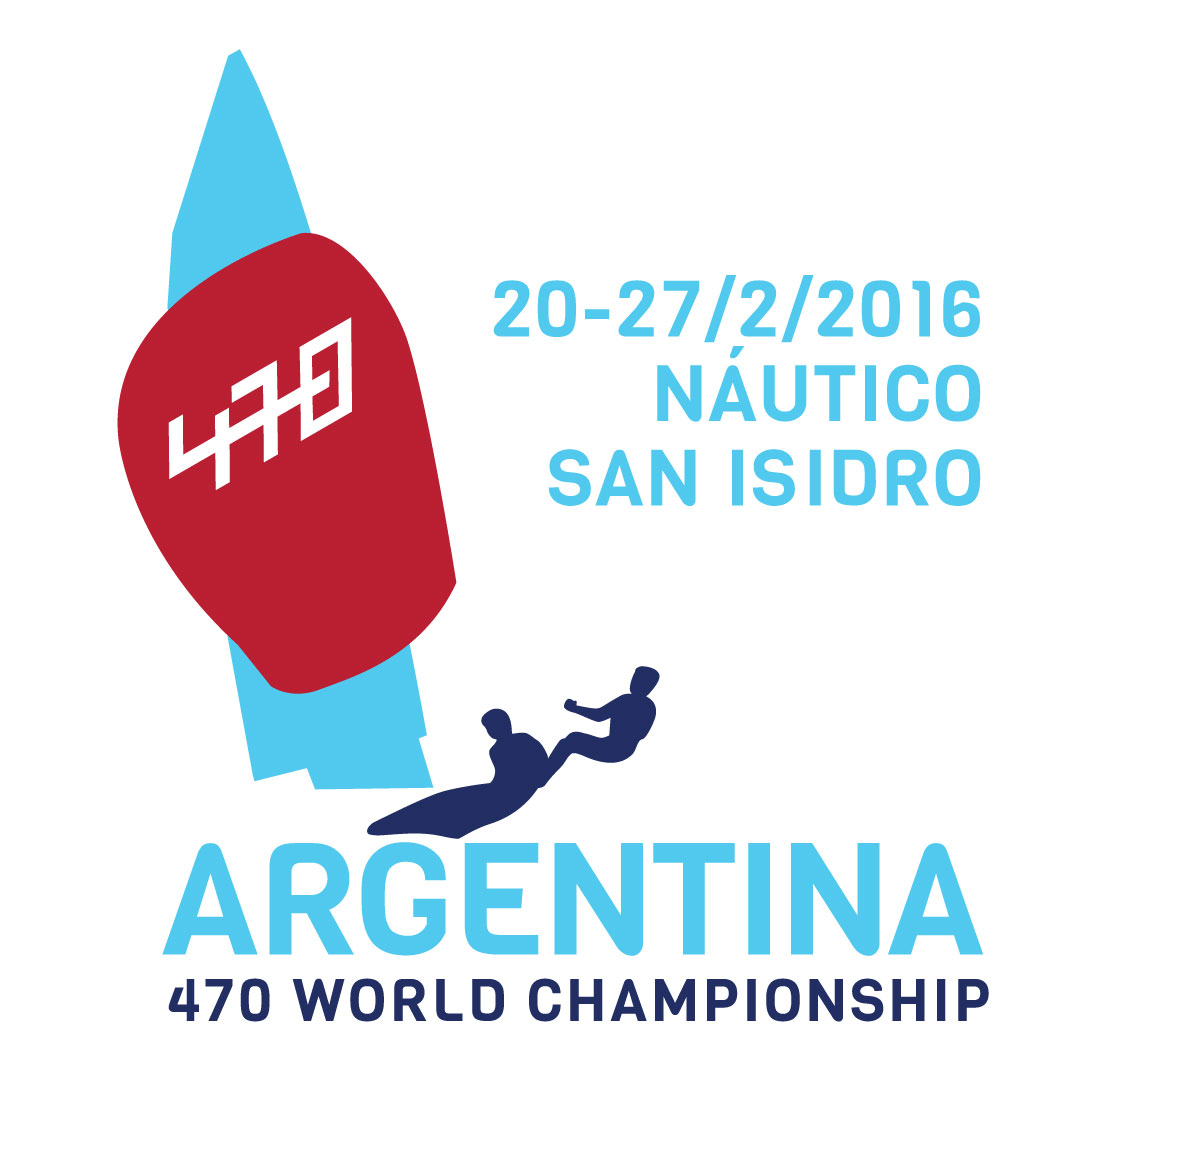 470 World Championship logo